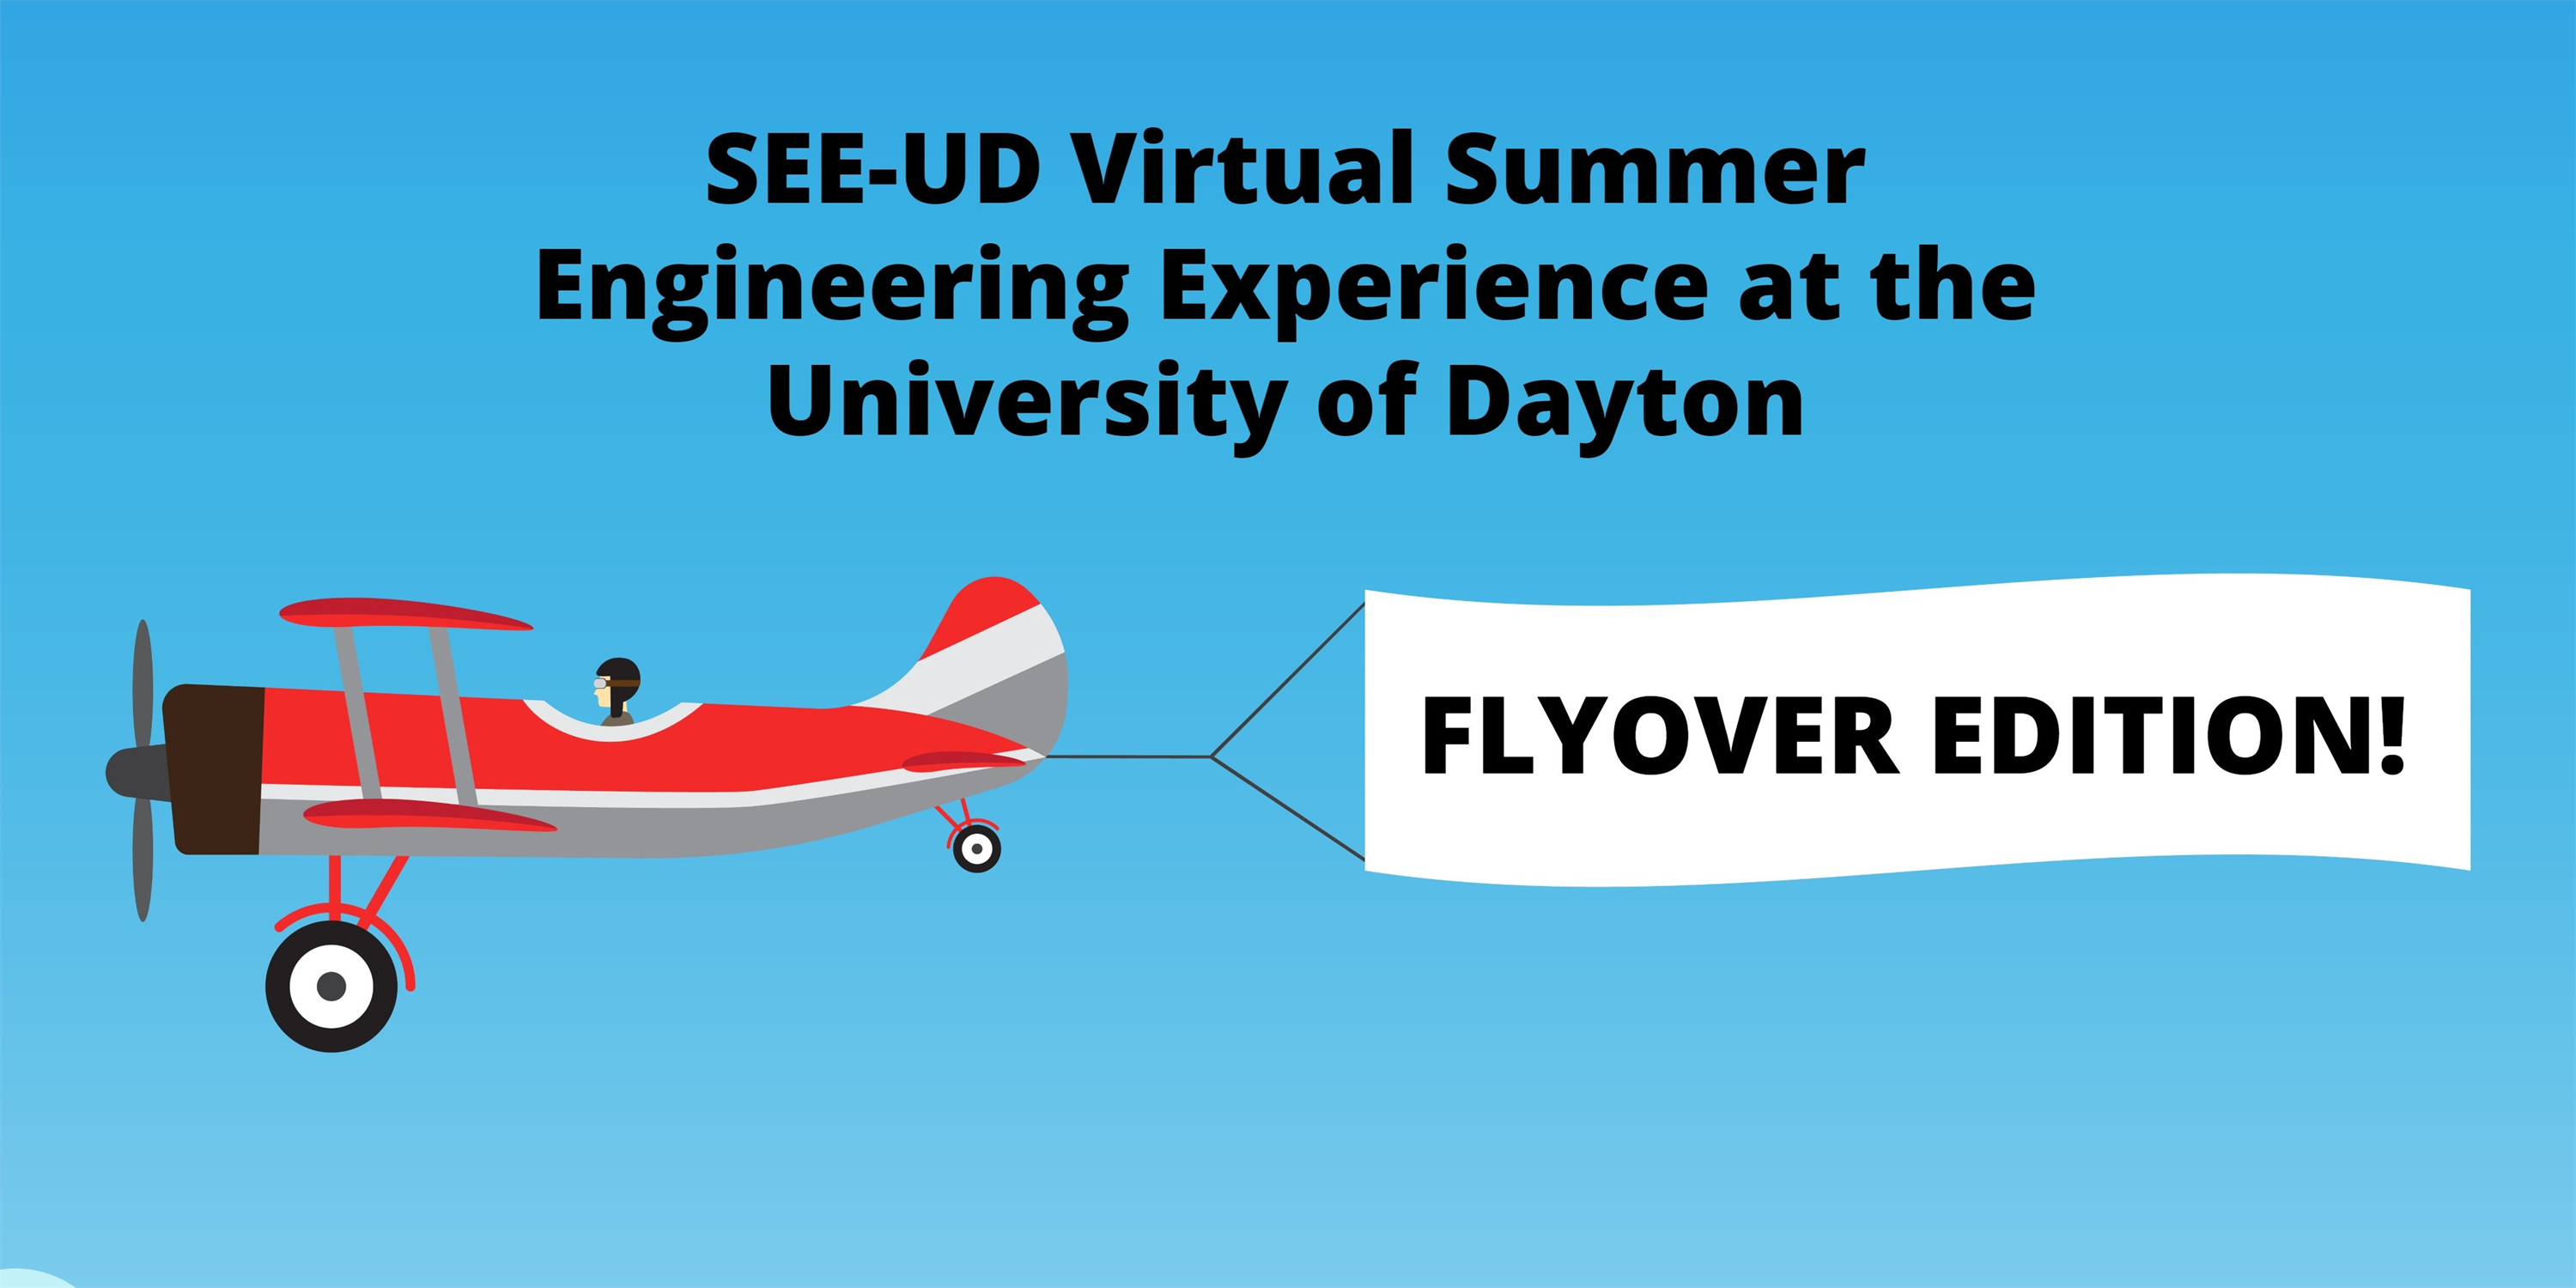 SEE-UD (Summer Engineering Experience at the University of Dayton) - Virtual Flyover!